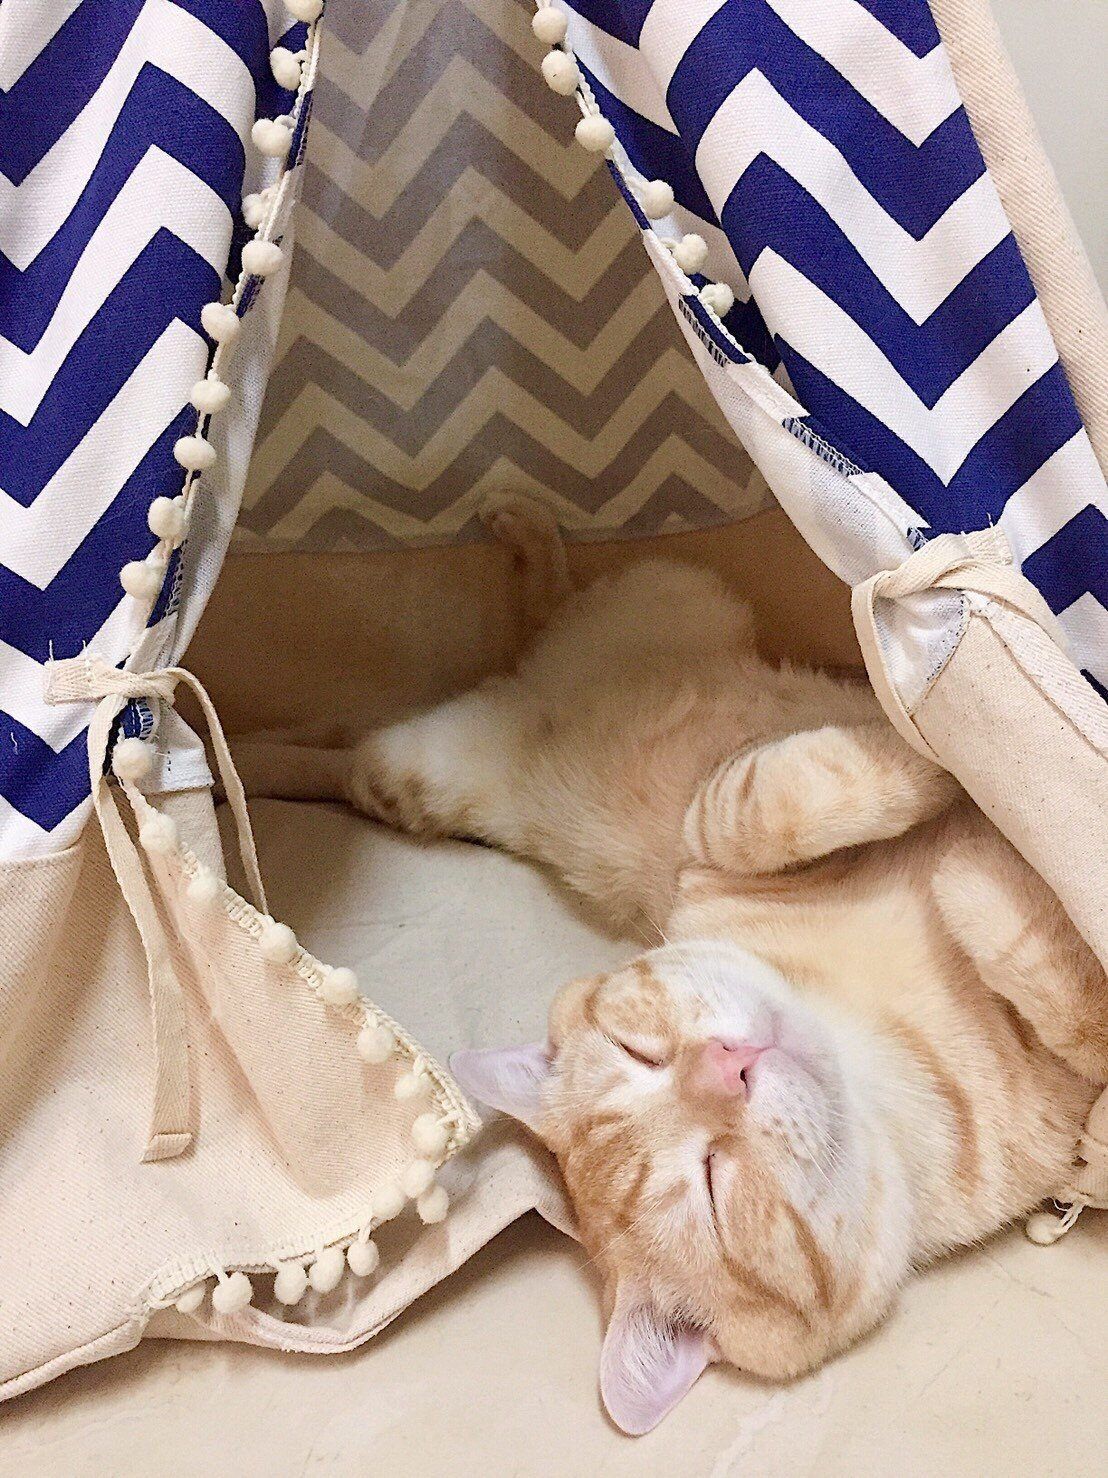 THAI Pet Teepee Handmade Size S_38x38x70 cm TP005 Pet teepee, Dog teepee, Cat teepee, Cat bed, Dog bed, Dog tent and Dog house FREE pet toy for all purchase! Pet toy made from 100% cotton and ha by WilaaMalin (Image #1)